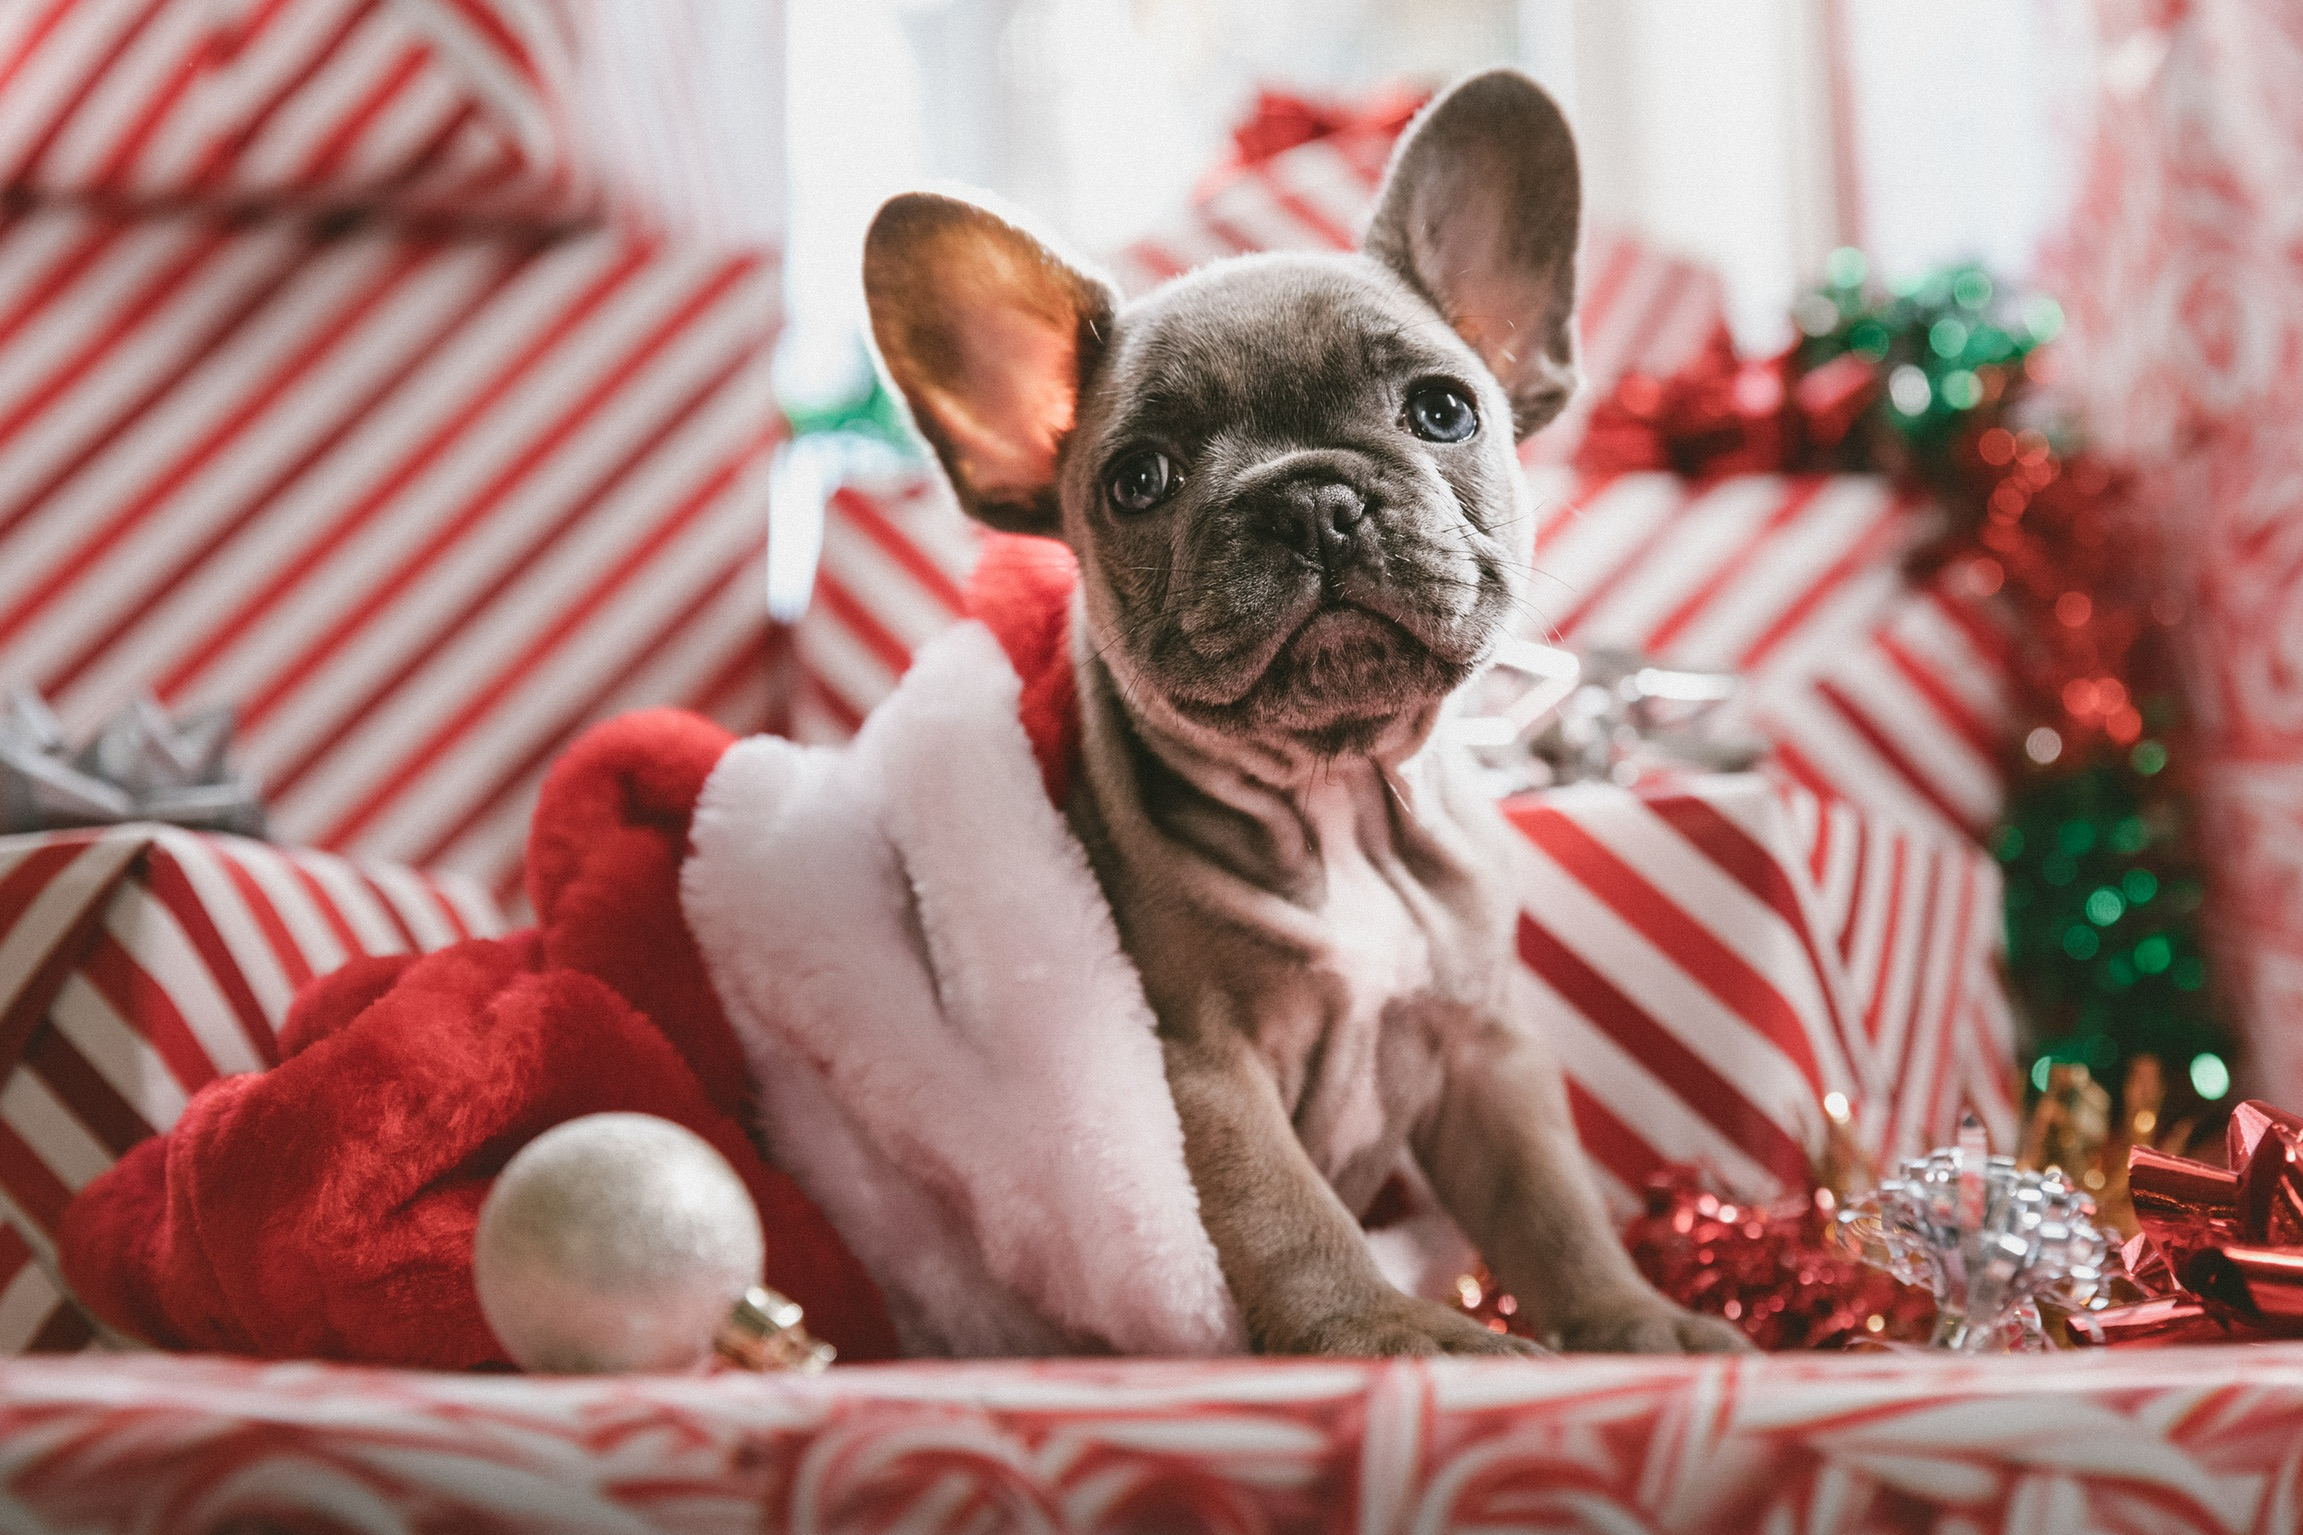 Cute puppy stocking stuffers